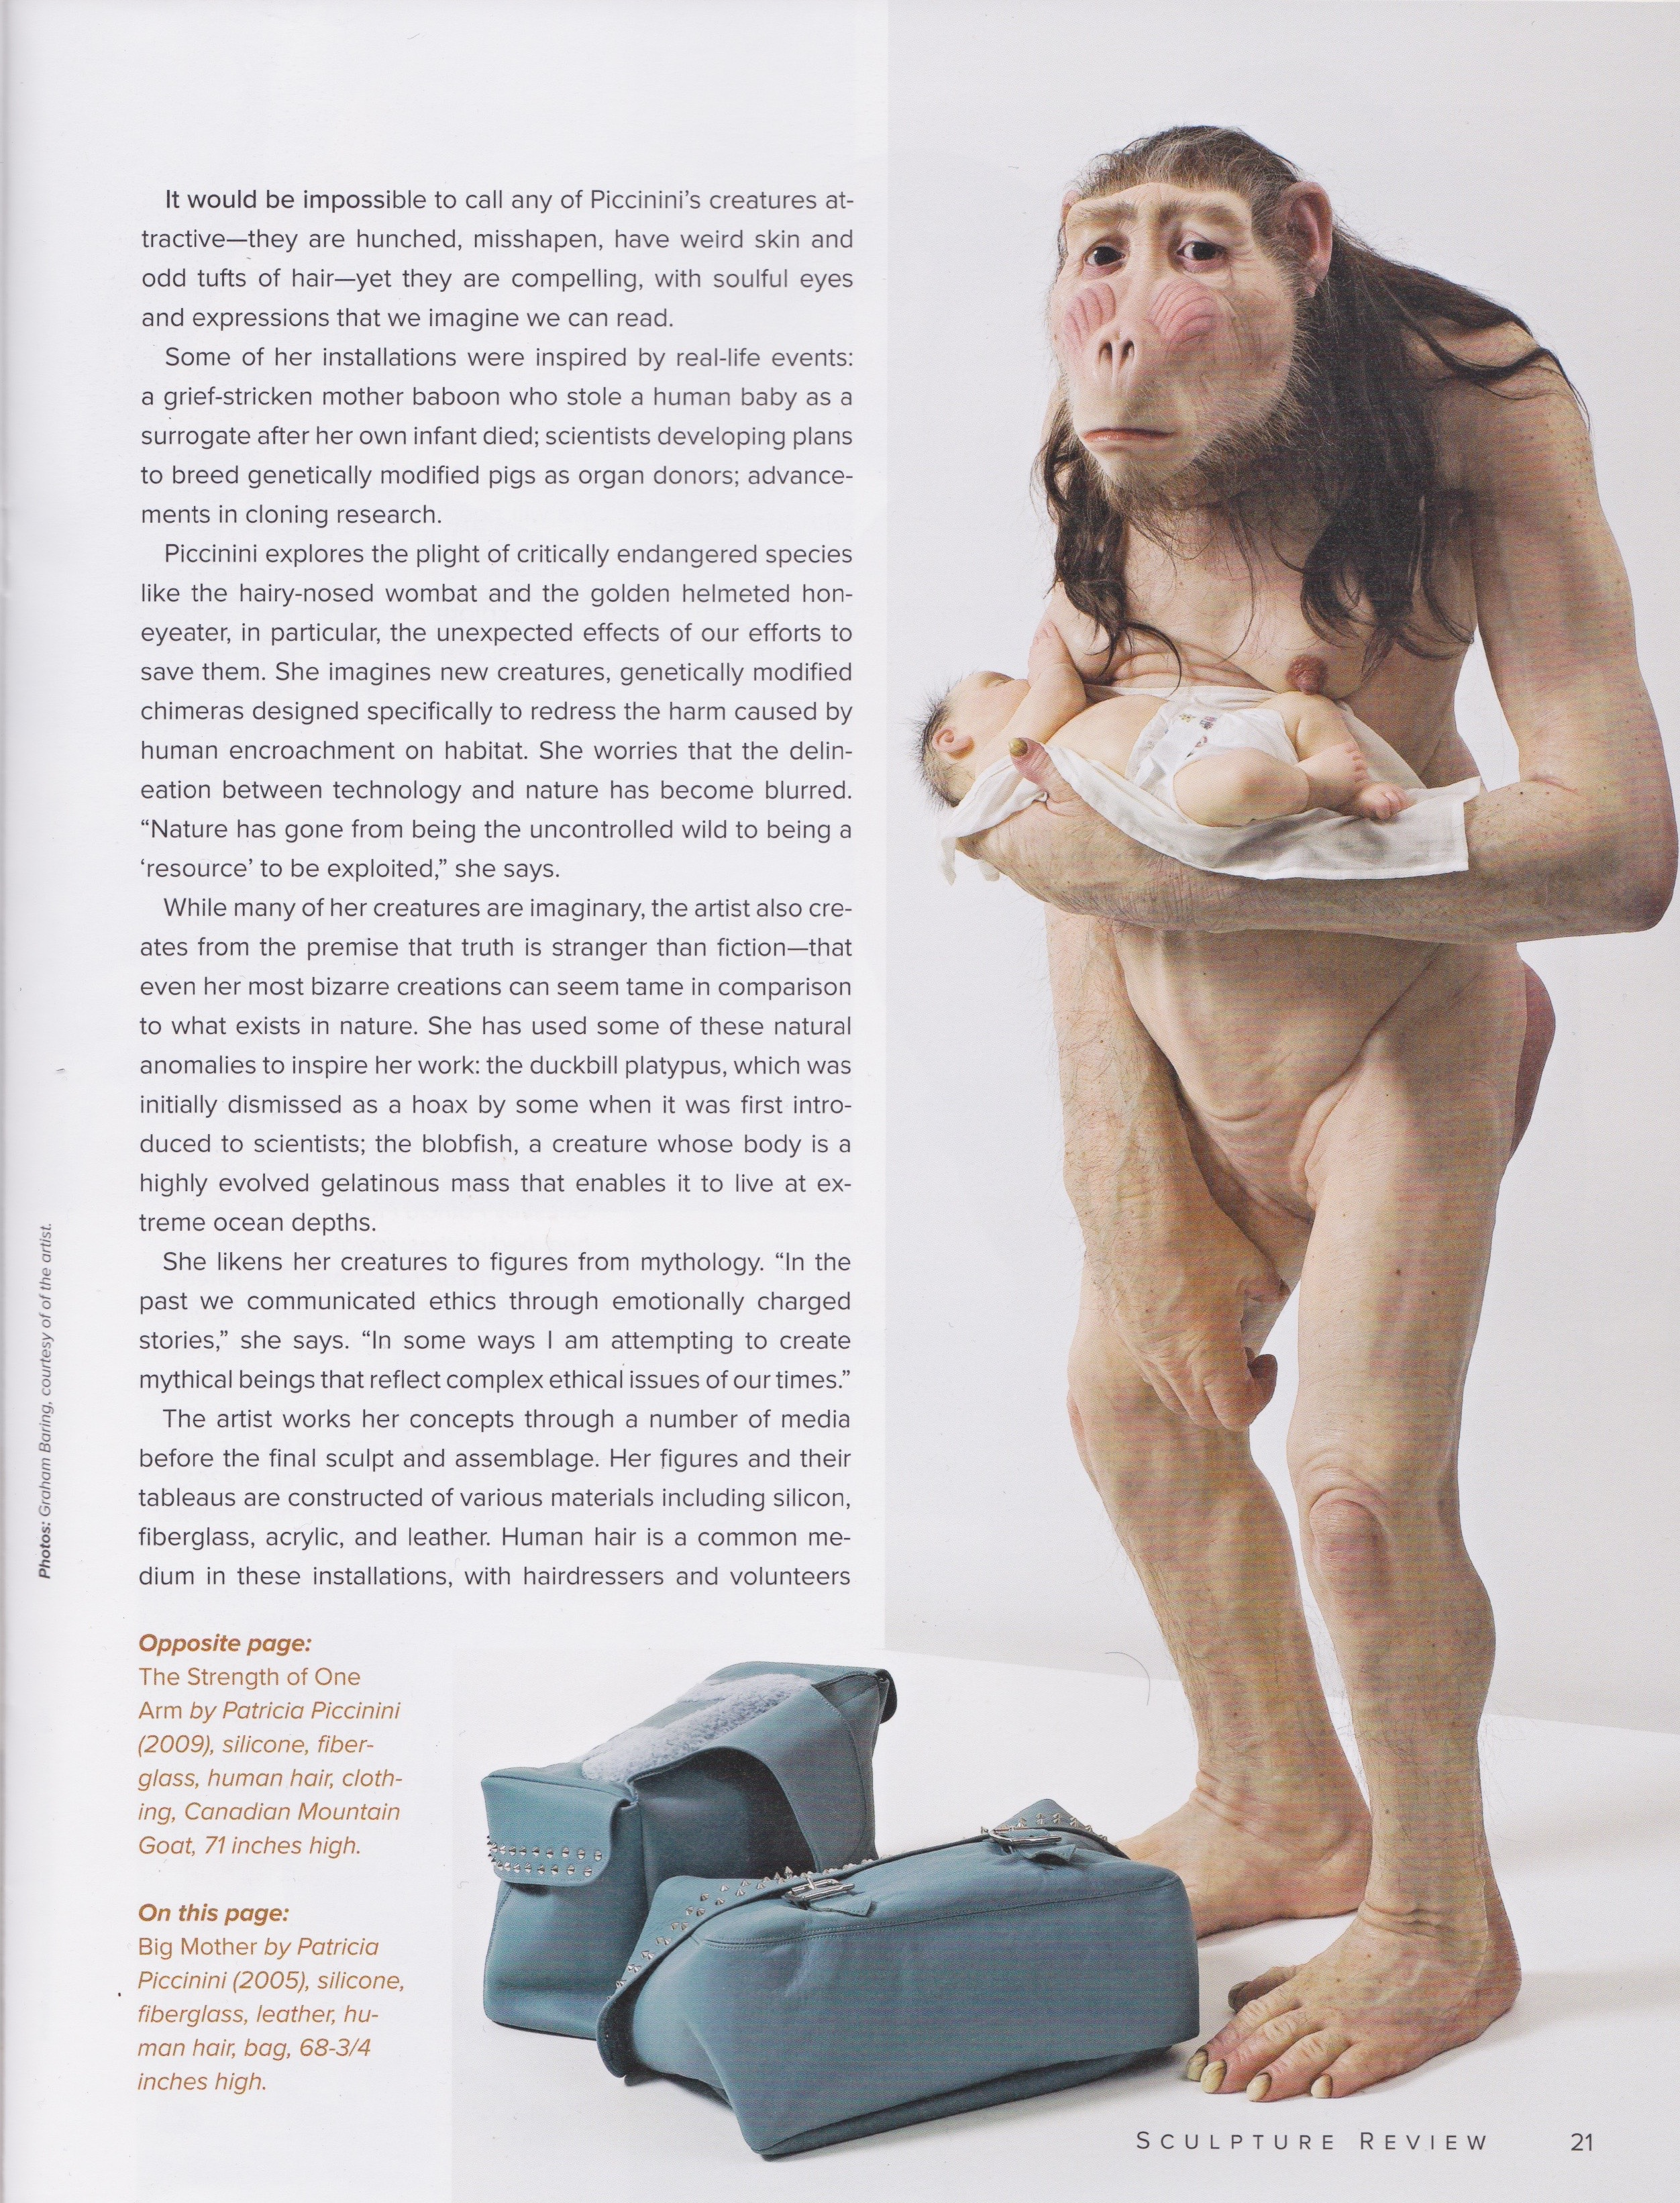 SculptureRevMag_03 - 1